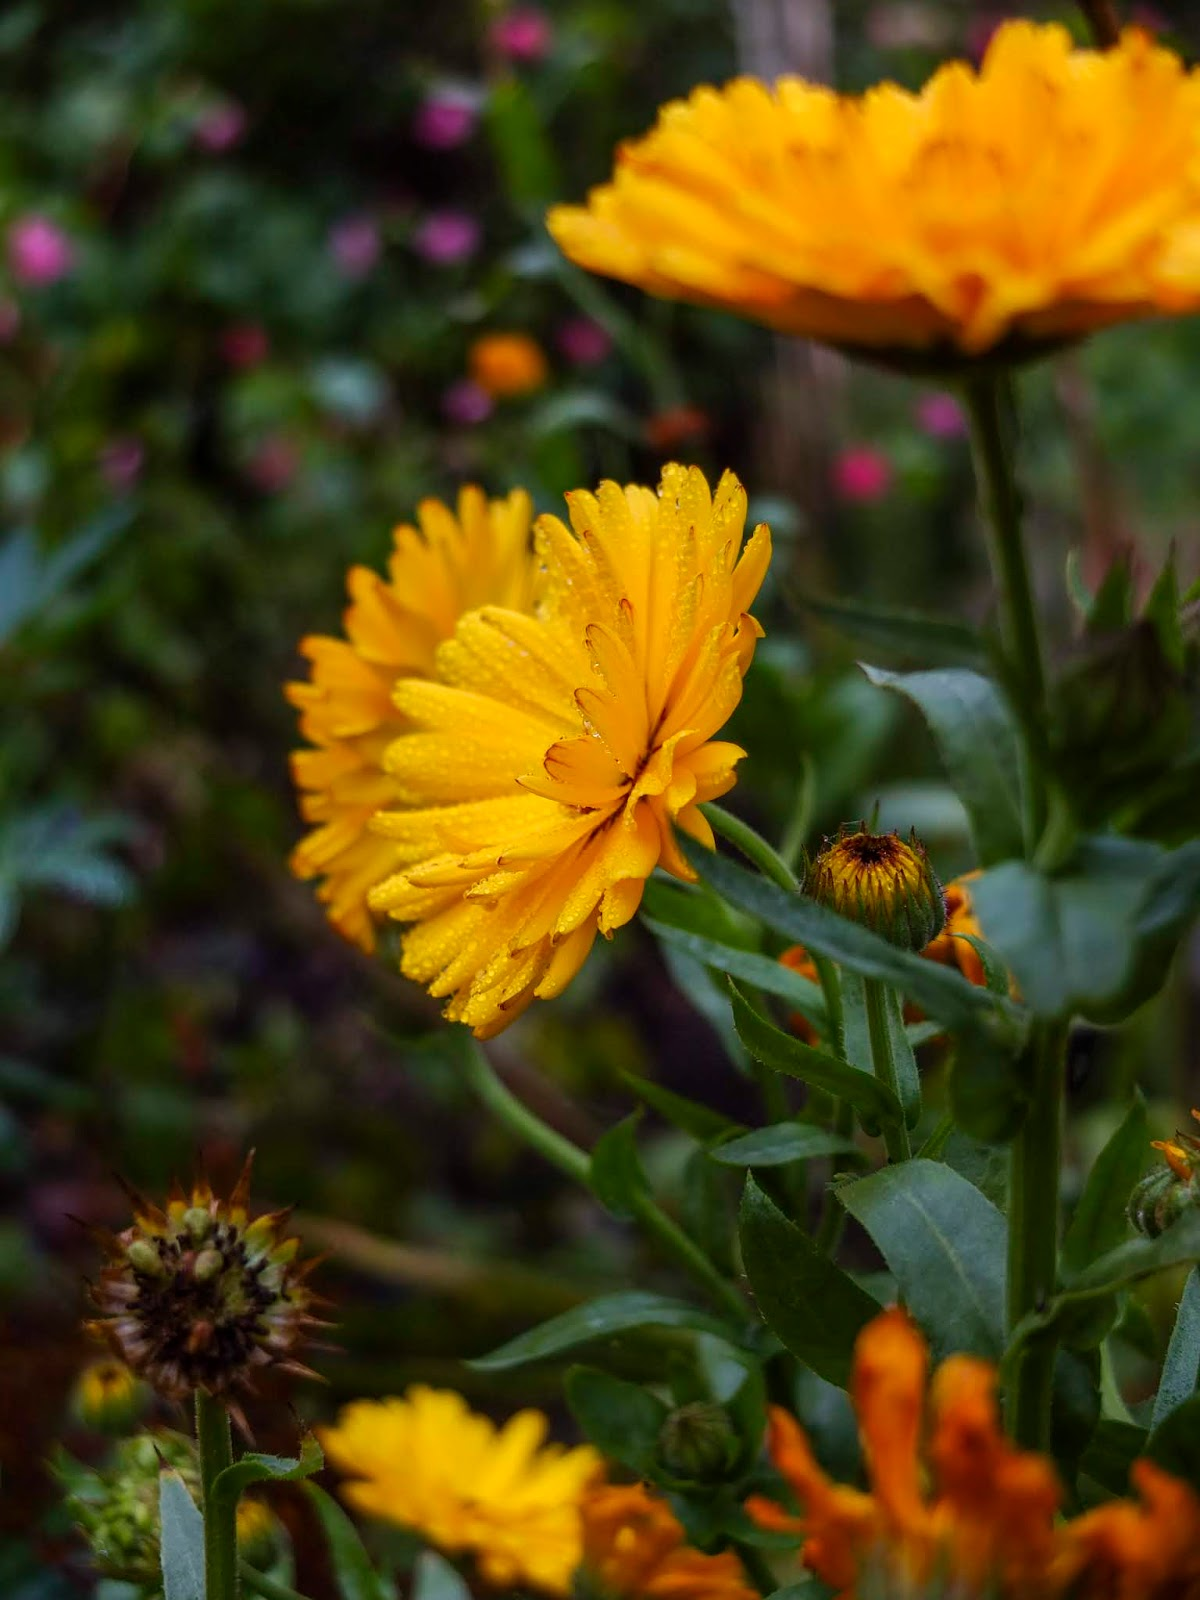 Dew on yellow Calendula flowers in a flower garden.